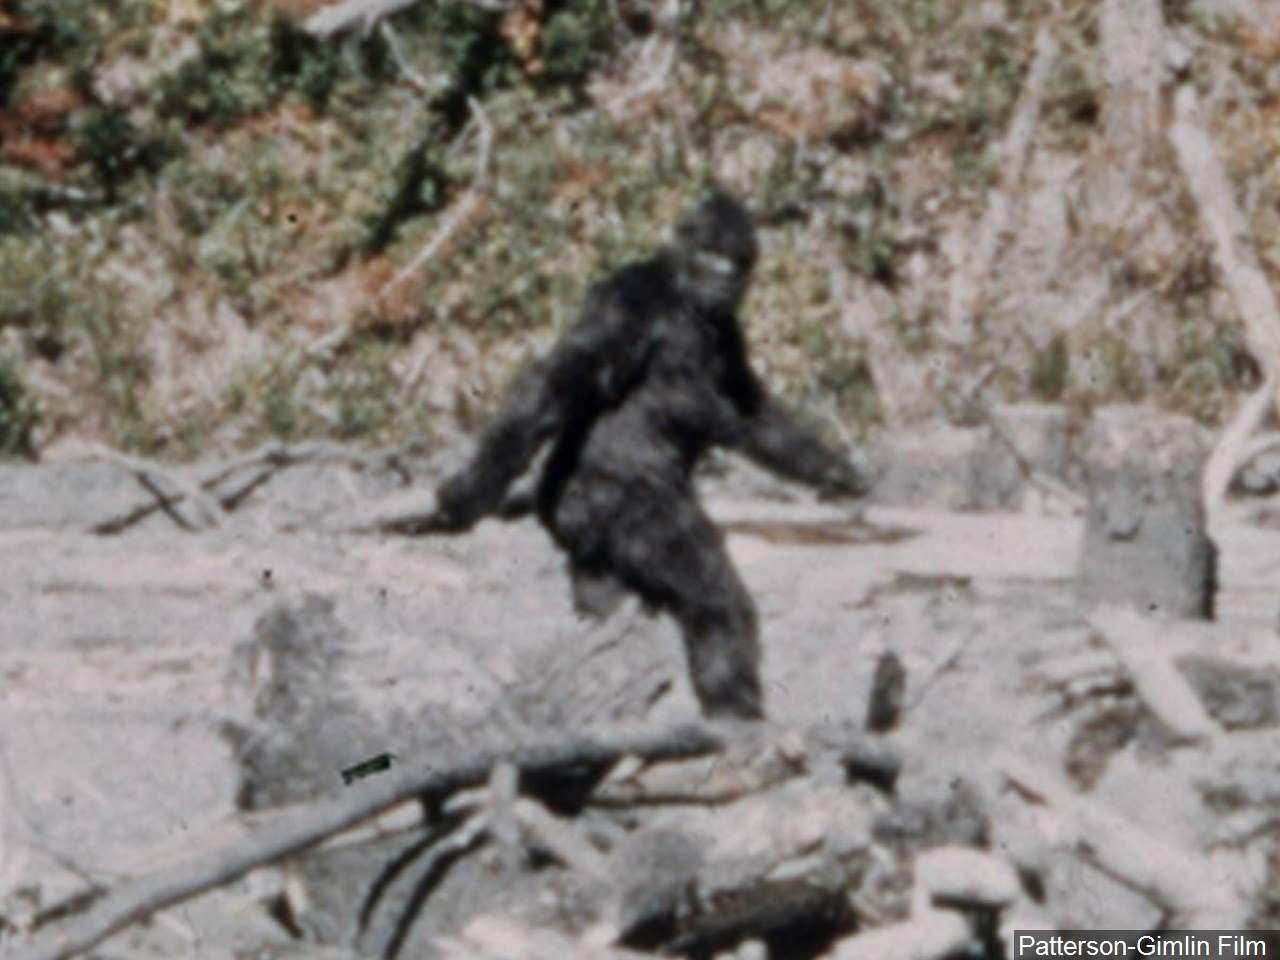 Patterson Gimlin frame 352 Big Foot